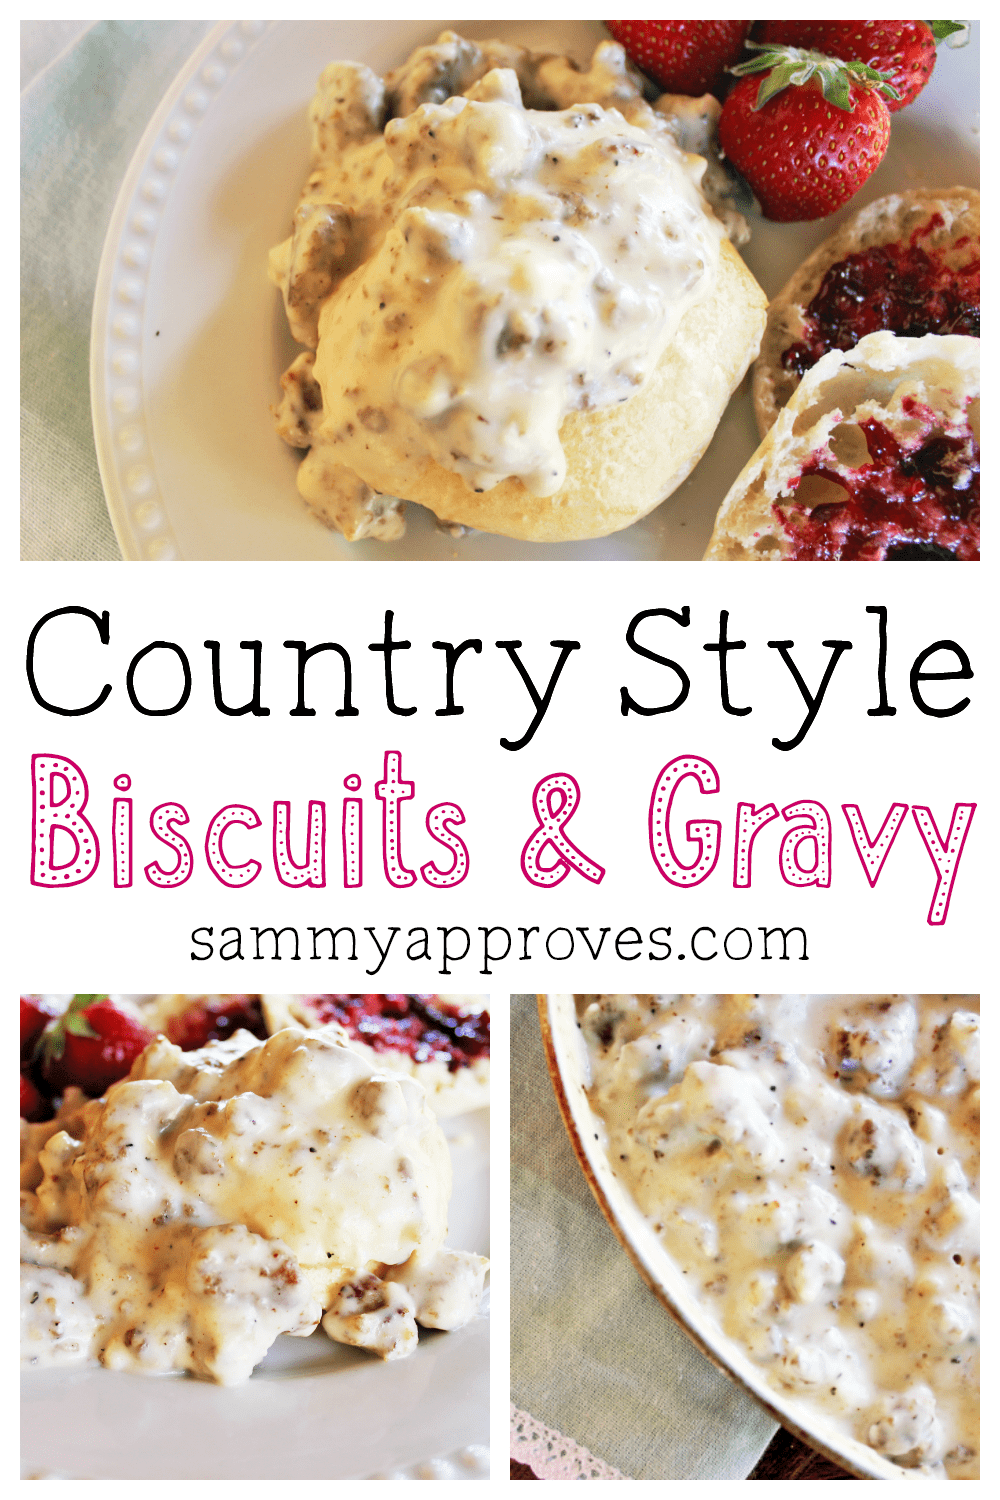 Country Style Biscuits & Gravy | Perfect for Mother's Day Brunch!